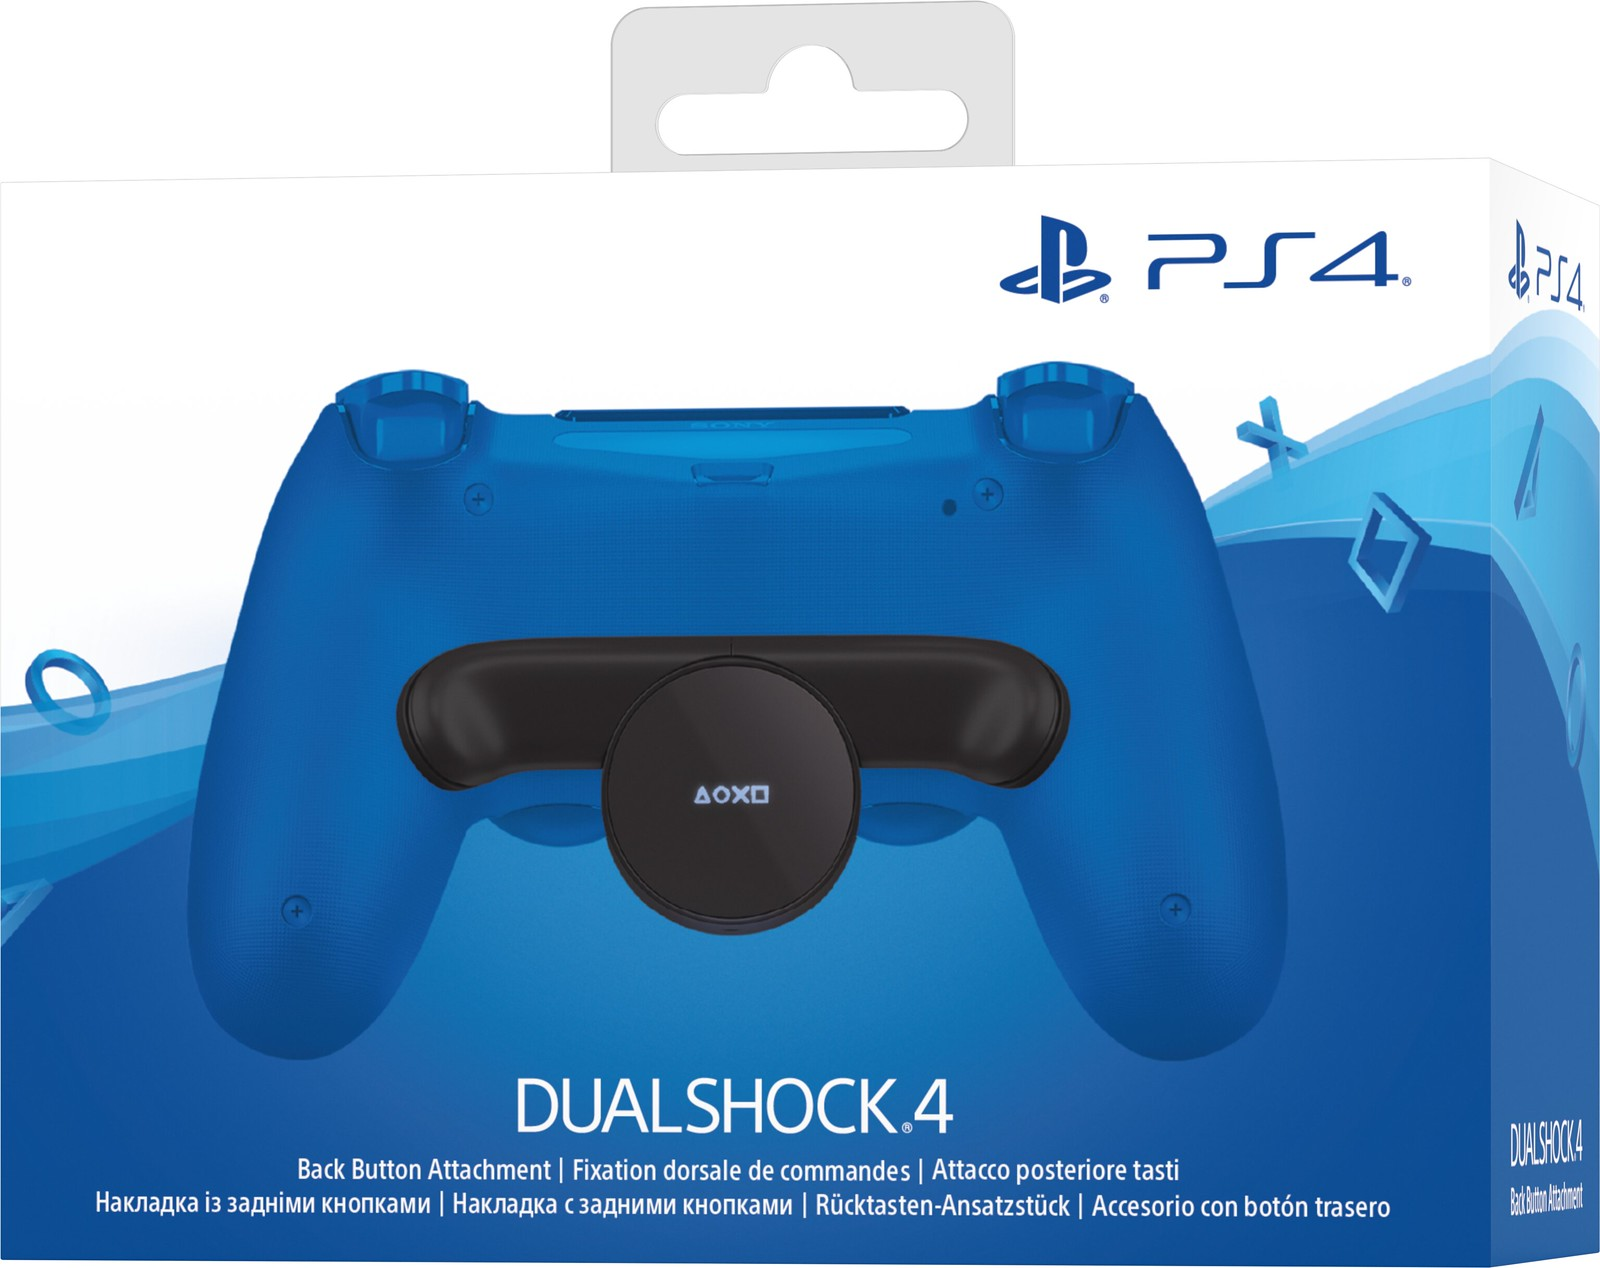 Dualshock 4 Back Button Attachment on PS4